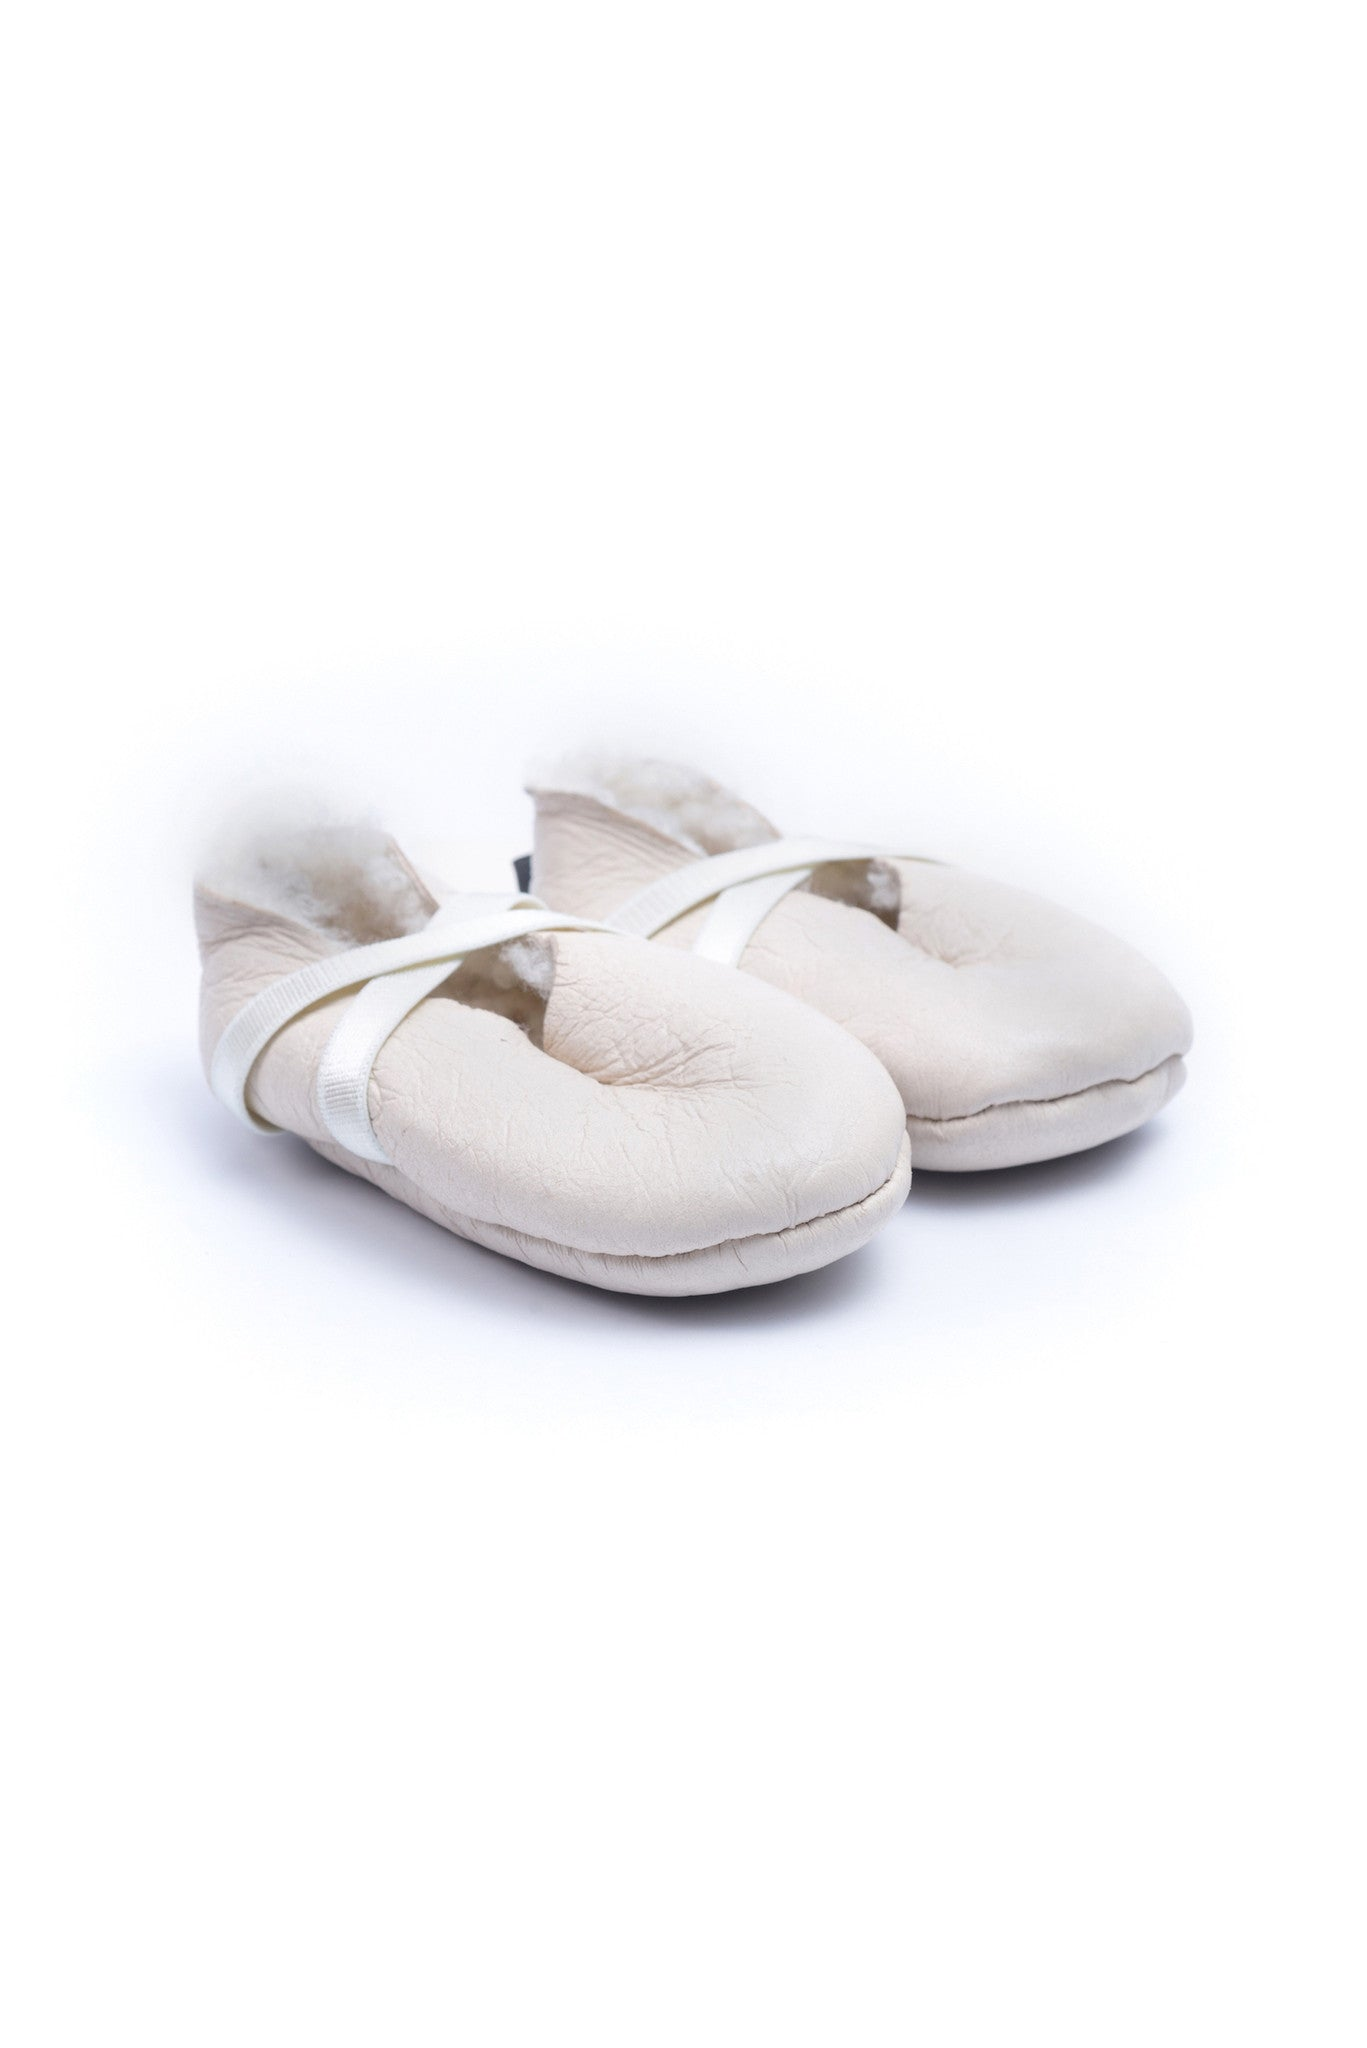 10001034 Kina Baby~Shoes 0-3M at Retykle